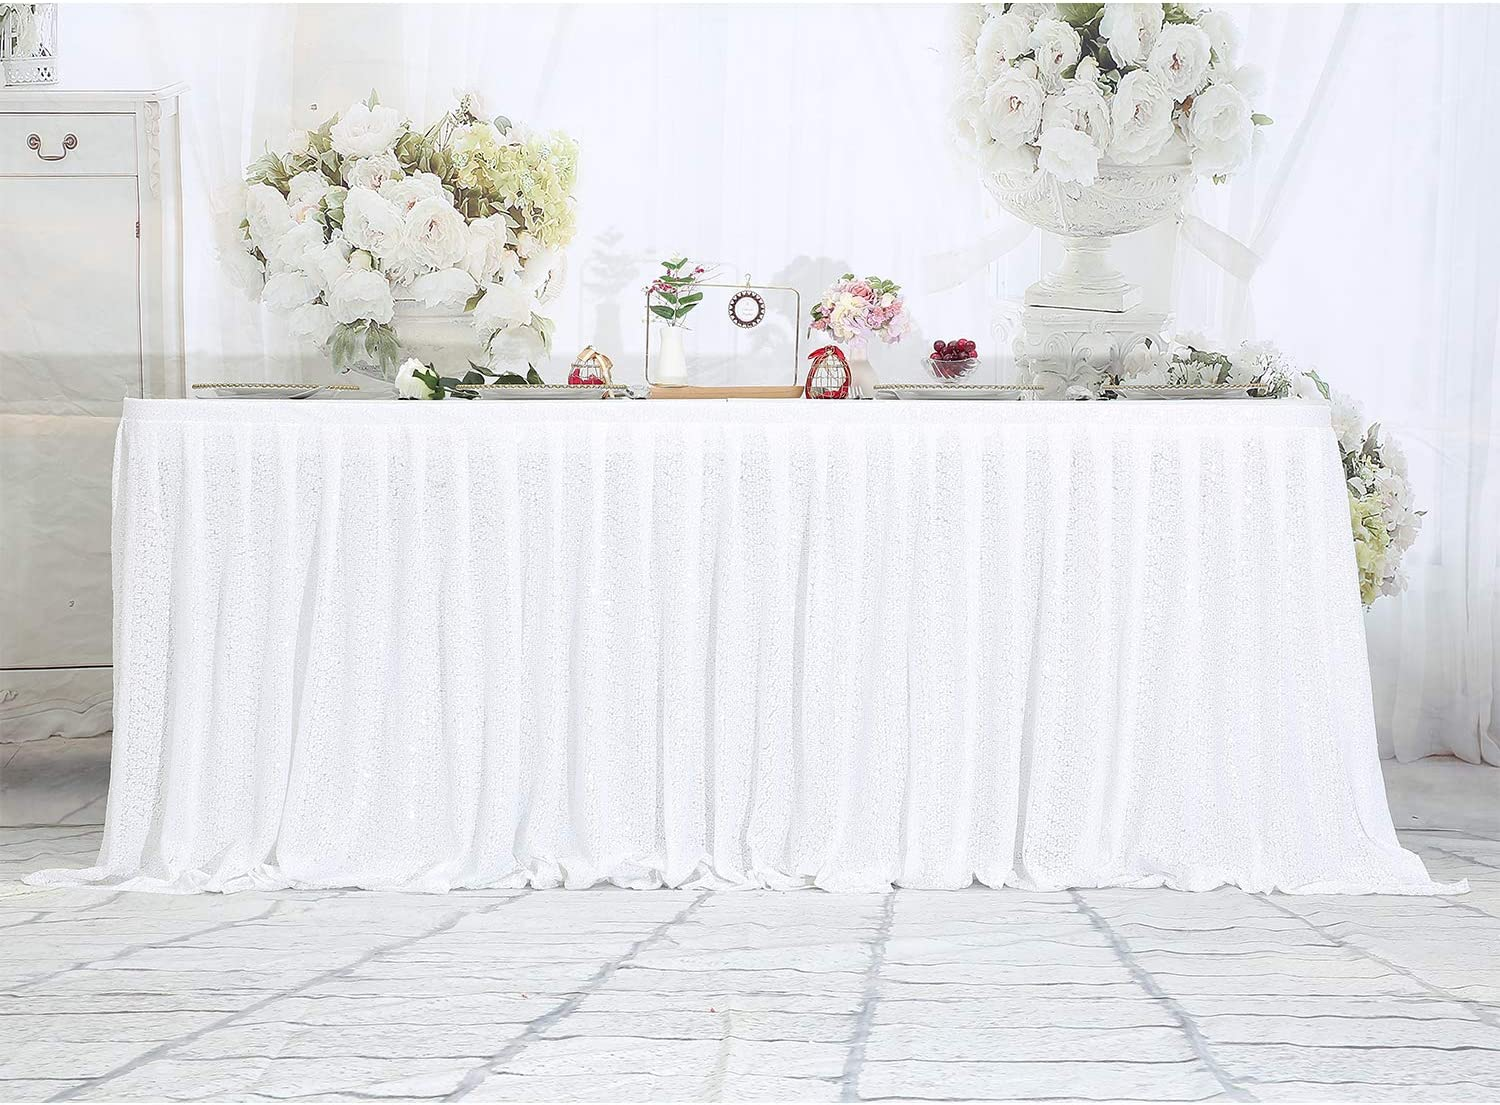 Leather string set for boutiques 1cm Wedding table decor Available in 12 colors